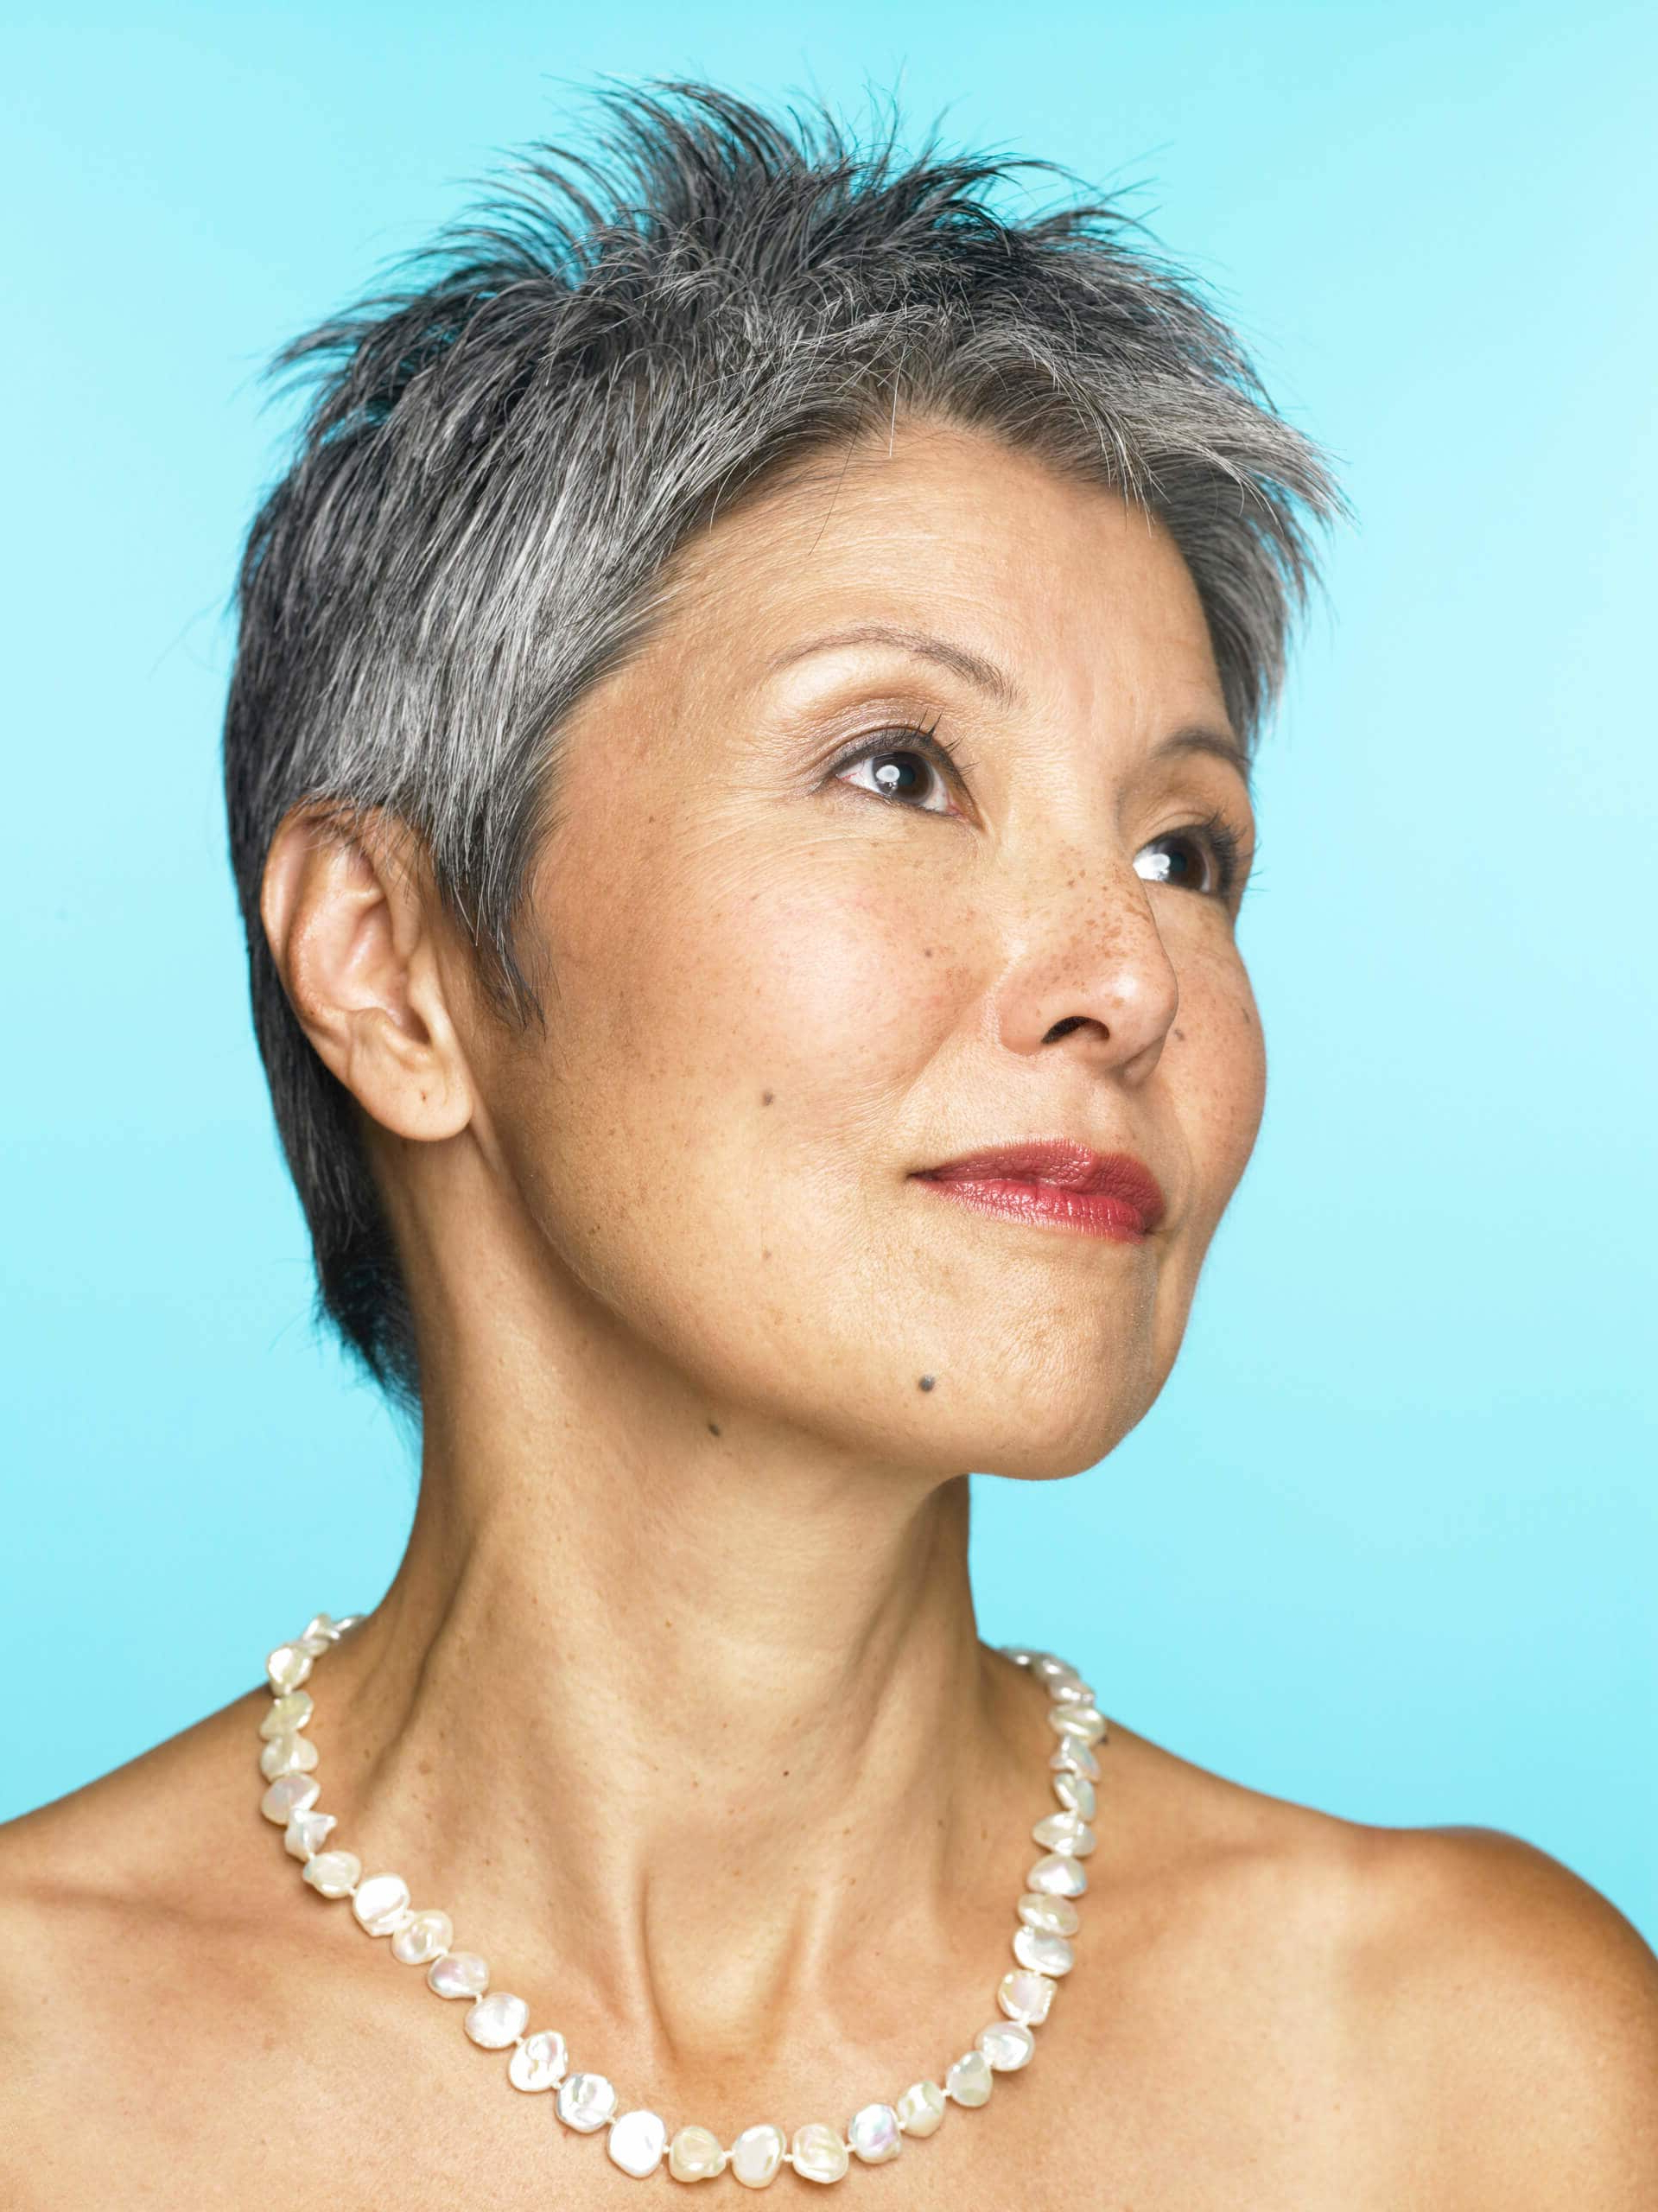 6 Chic And Classic Short Hairstyles For Older Women | All Things Hair Uk Regarding Short Hairstyles For Mature Woman (View 24 of 25)